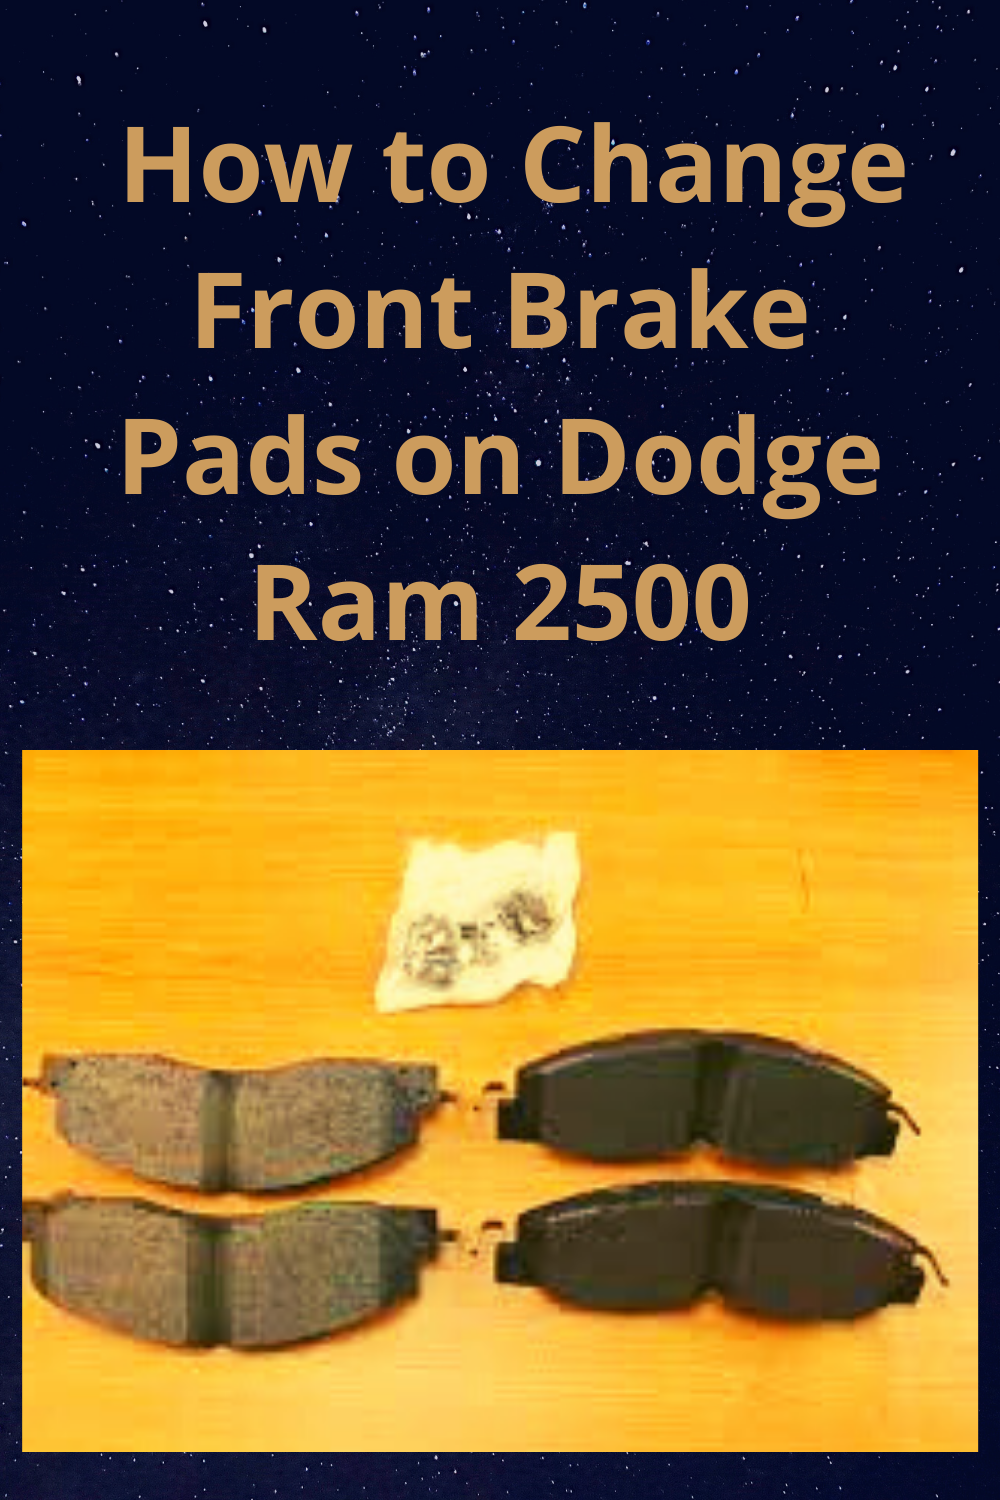 How To Change Front Brake Pads On Dodge Ram 2500 Dodge Ram 2500 Dodge Ram Ram 2500